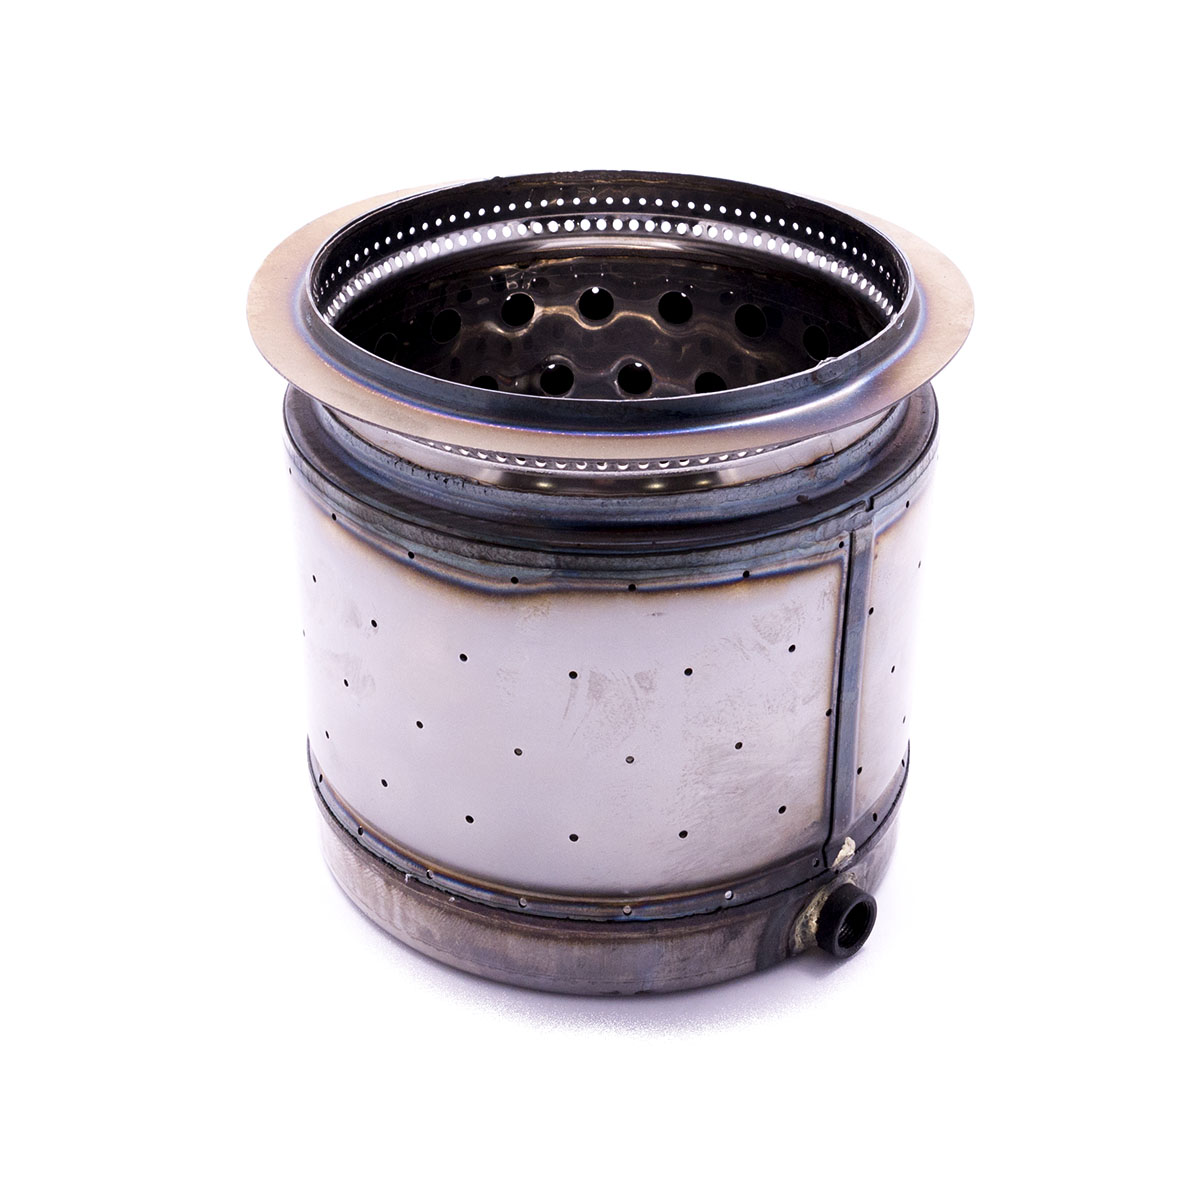 "Burn Pot Replacement for 7"" Kuma Oil Stoves"